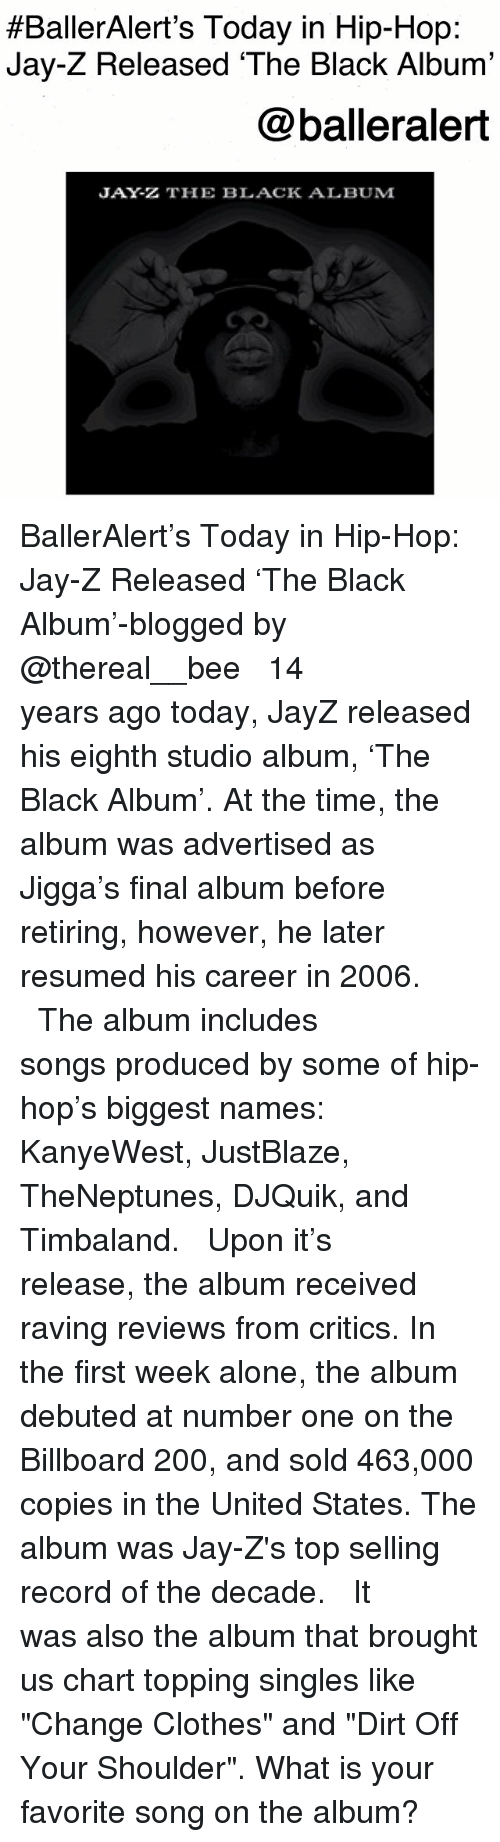 """raving:  #BallerAlert's Today in Hip-Hop:  Jay-Z Released 'The Black Album'  @balleralert  JAY-Z THE BLACK ALBUM BallerAlert's Today in Hip-Hop: Jay-Z Released 'The Black Album'-blogged by @thereal__bee ⠀⠀⠀⠀⠀⠀⠀⠀⠀ ⠀⠀ 14 years ago today, JayZ released his eighth studio album, 'The Black Album'. At the time, the album was advertised as Jigga's final album before retiring, however, he later resumed his career in 2006. ⠀⠀⠀⠀⠀⠀⠀⠀⠀ ⠀⠀ The album includes songs produced by some of hip-hop's biggest names: KanyeWest, JustBlaze, TheNeptunes, DJQuik, and Timbaland. ⠀⠀⠀⠀⠀⠀⠀⠀⠀ ⠀⠀ Upon it's release, the album received raving reviews from critics. In the first week alone, the album debuted at number one on the Billboard 200, and sold 463,000 copies in the United States. The album was Jay-Z's top selling record of the decade. ⠀⠀⠀⠀⠀⠀⠀⠀⠀ ⠀⠀ It was also the album that brought us chart topping singles like """"Change Clothes"""" and """"Dirt Off Your Shoulder"""". What is your favorite song on the album?"""